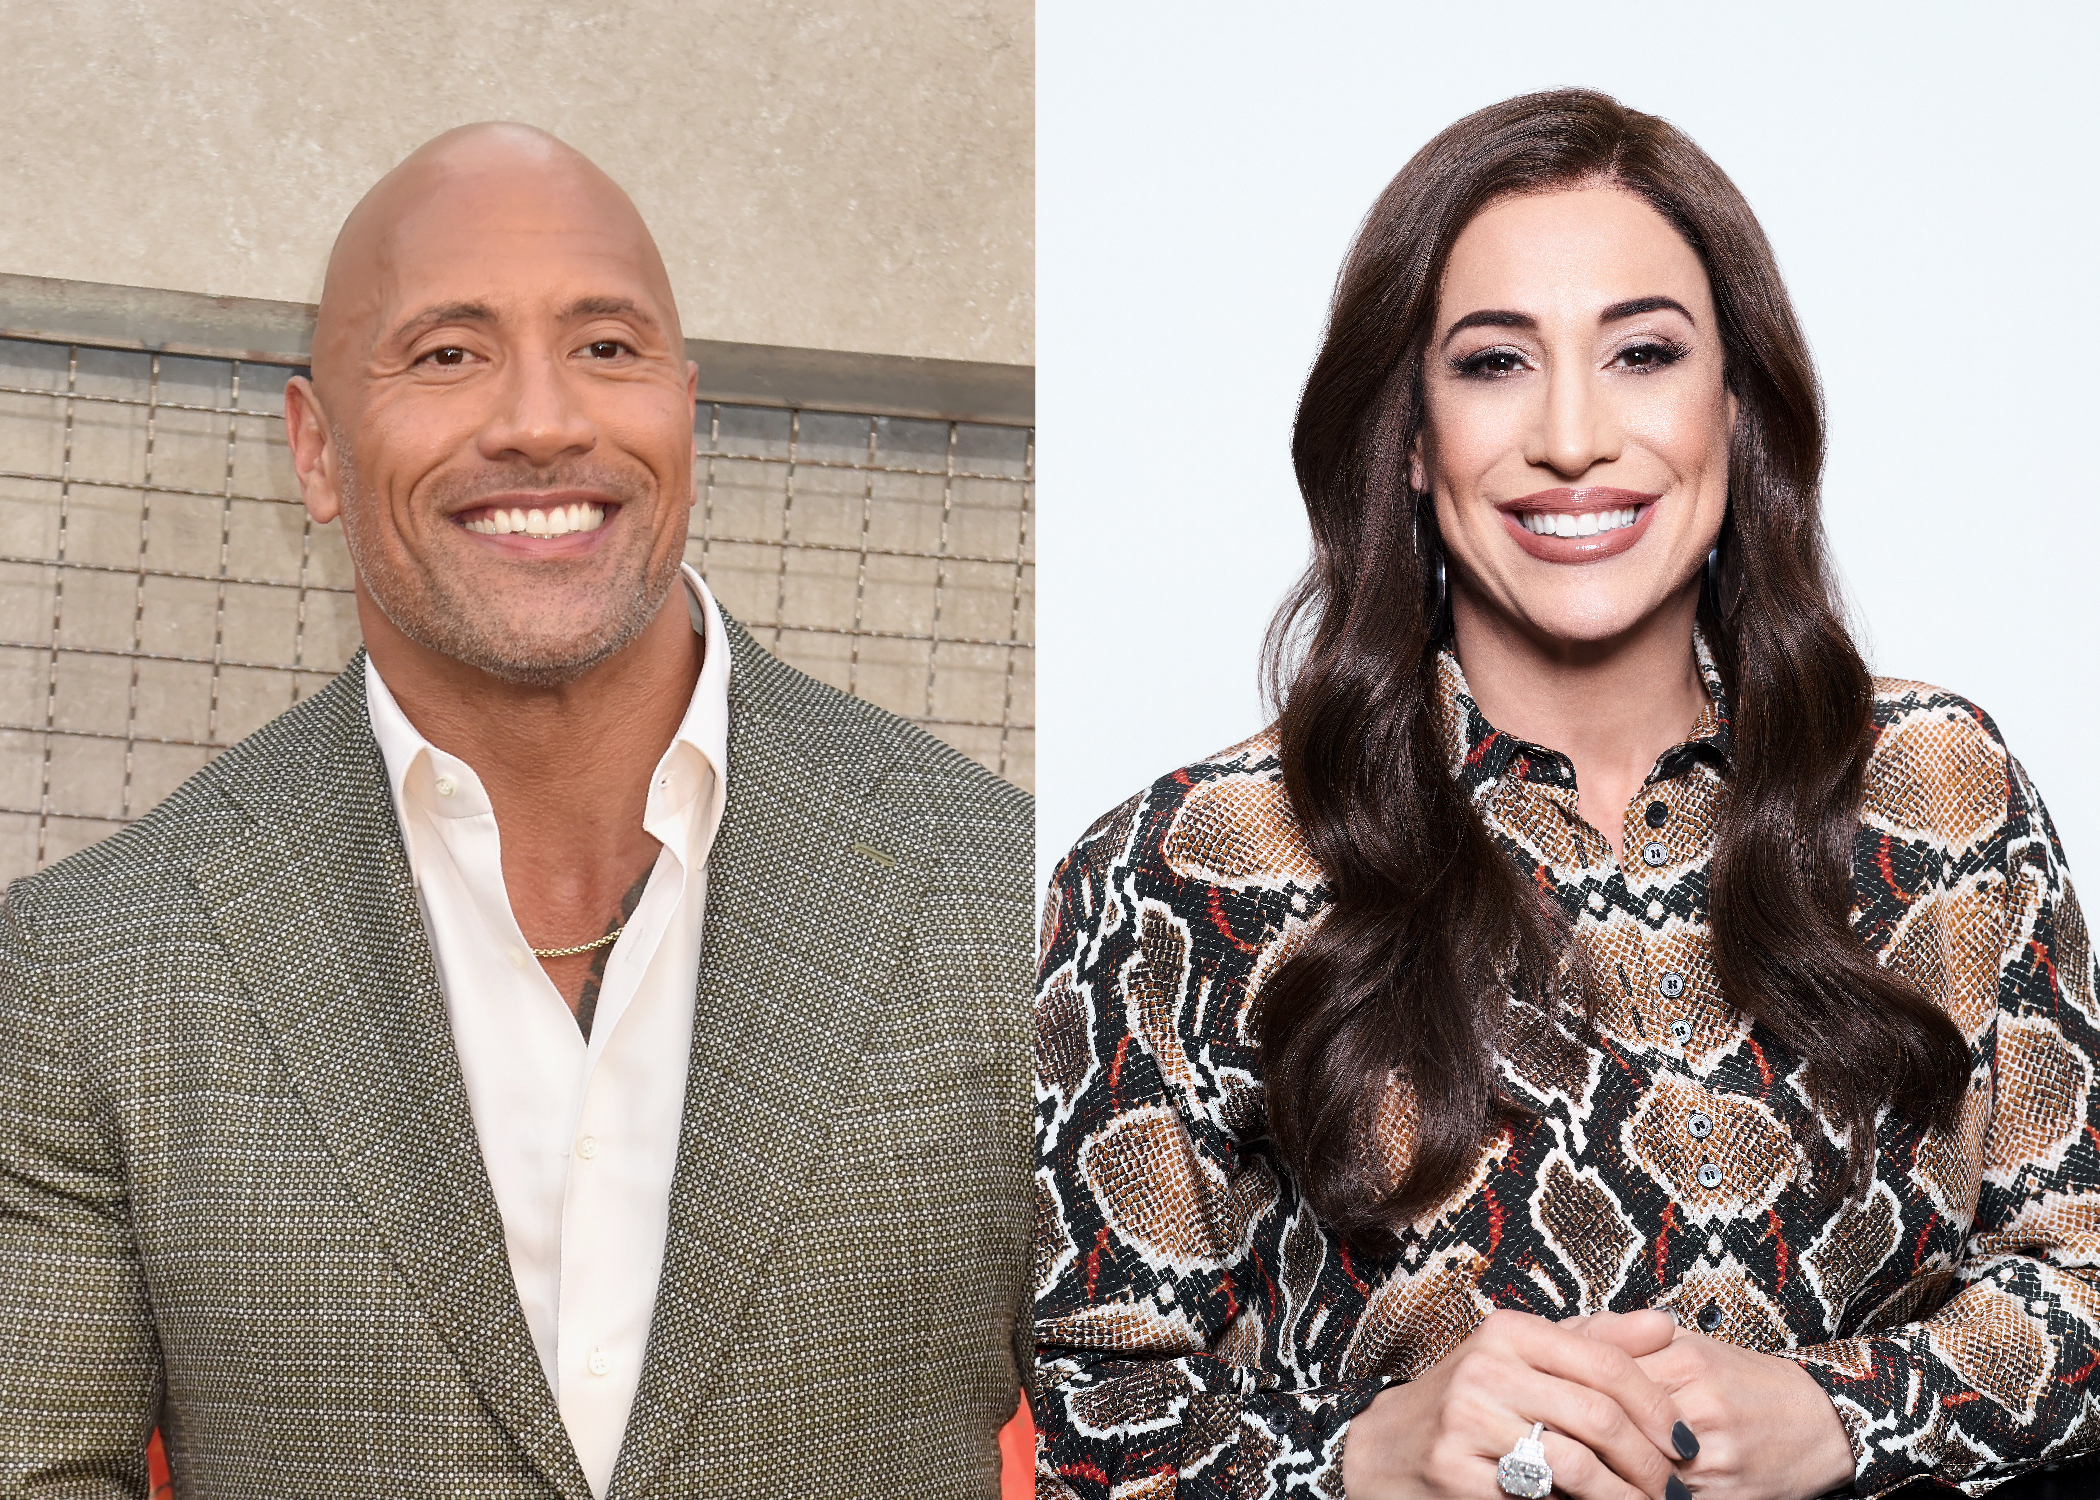 Dany Garcia and Dwayne Johnson Become Strategic Investors in Acorns, Launch Early Investing Initiatives